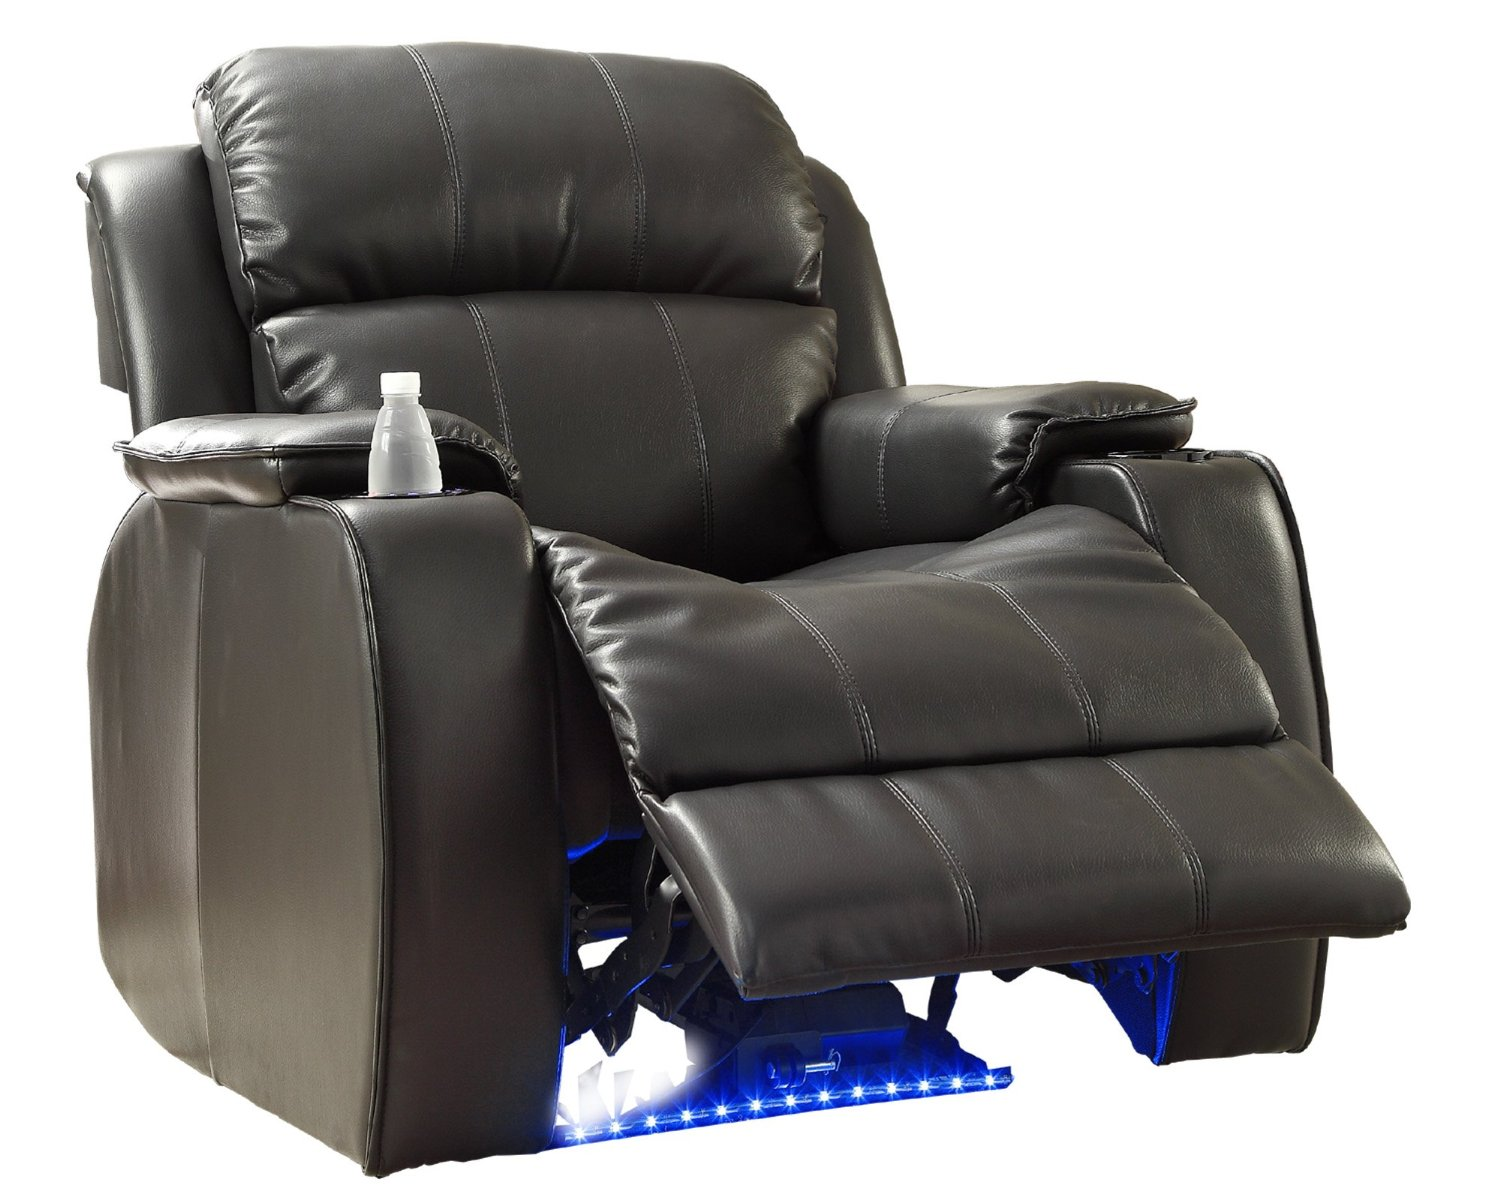 Top 3 Best Quality Recliners with Coolers Best Recliners : Homelegance 9745BLK 1 Jimmy Collection Upholstered Power Reclining Massage Chair Black Bonded Leather 2 from www.bestrecliner.net size 1500 x 1200 jpeg 184kB